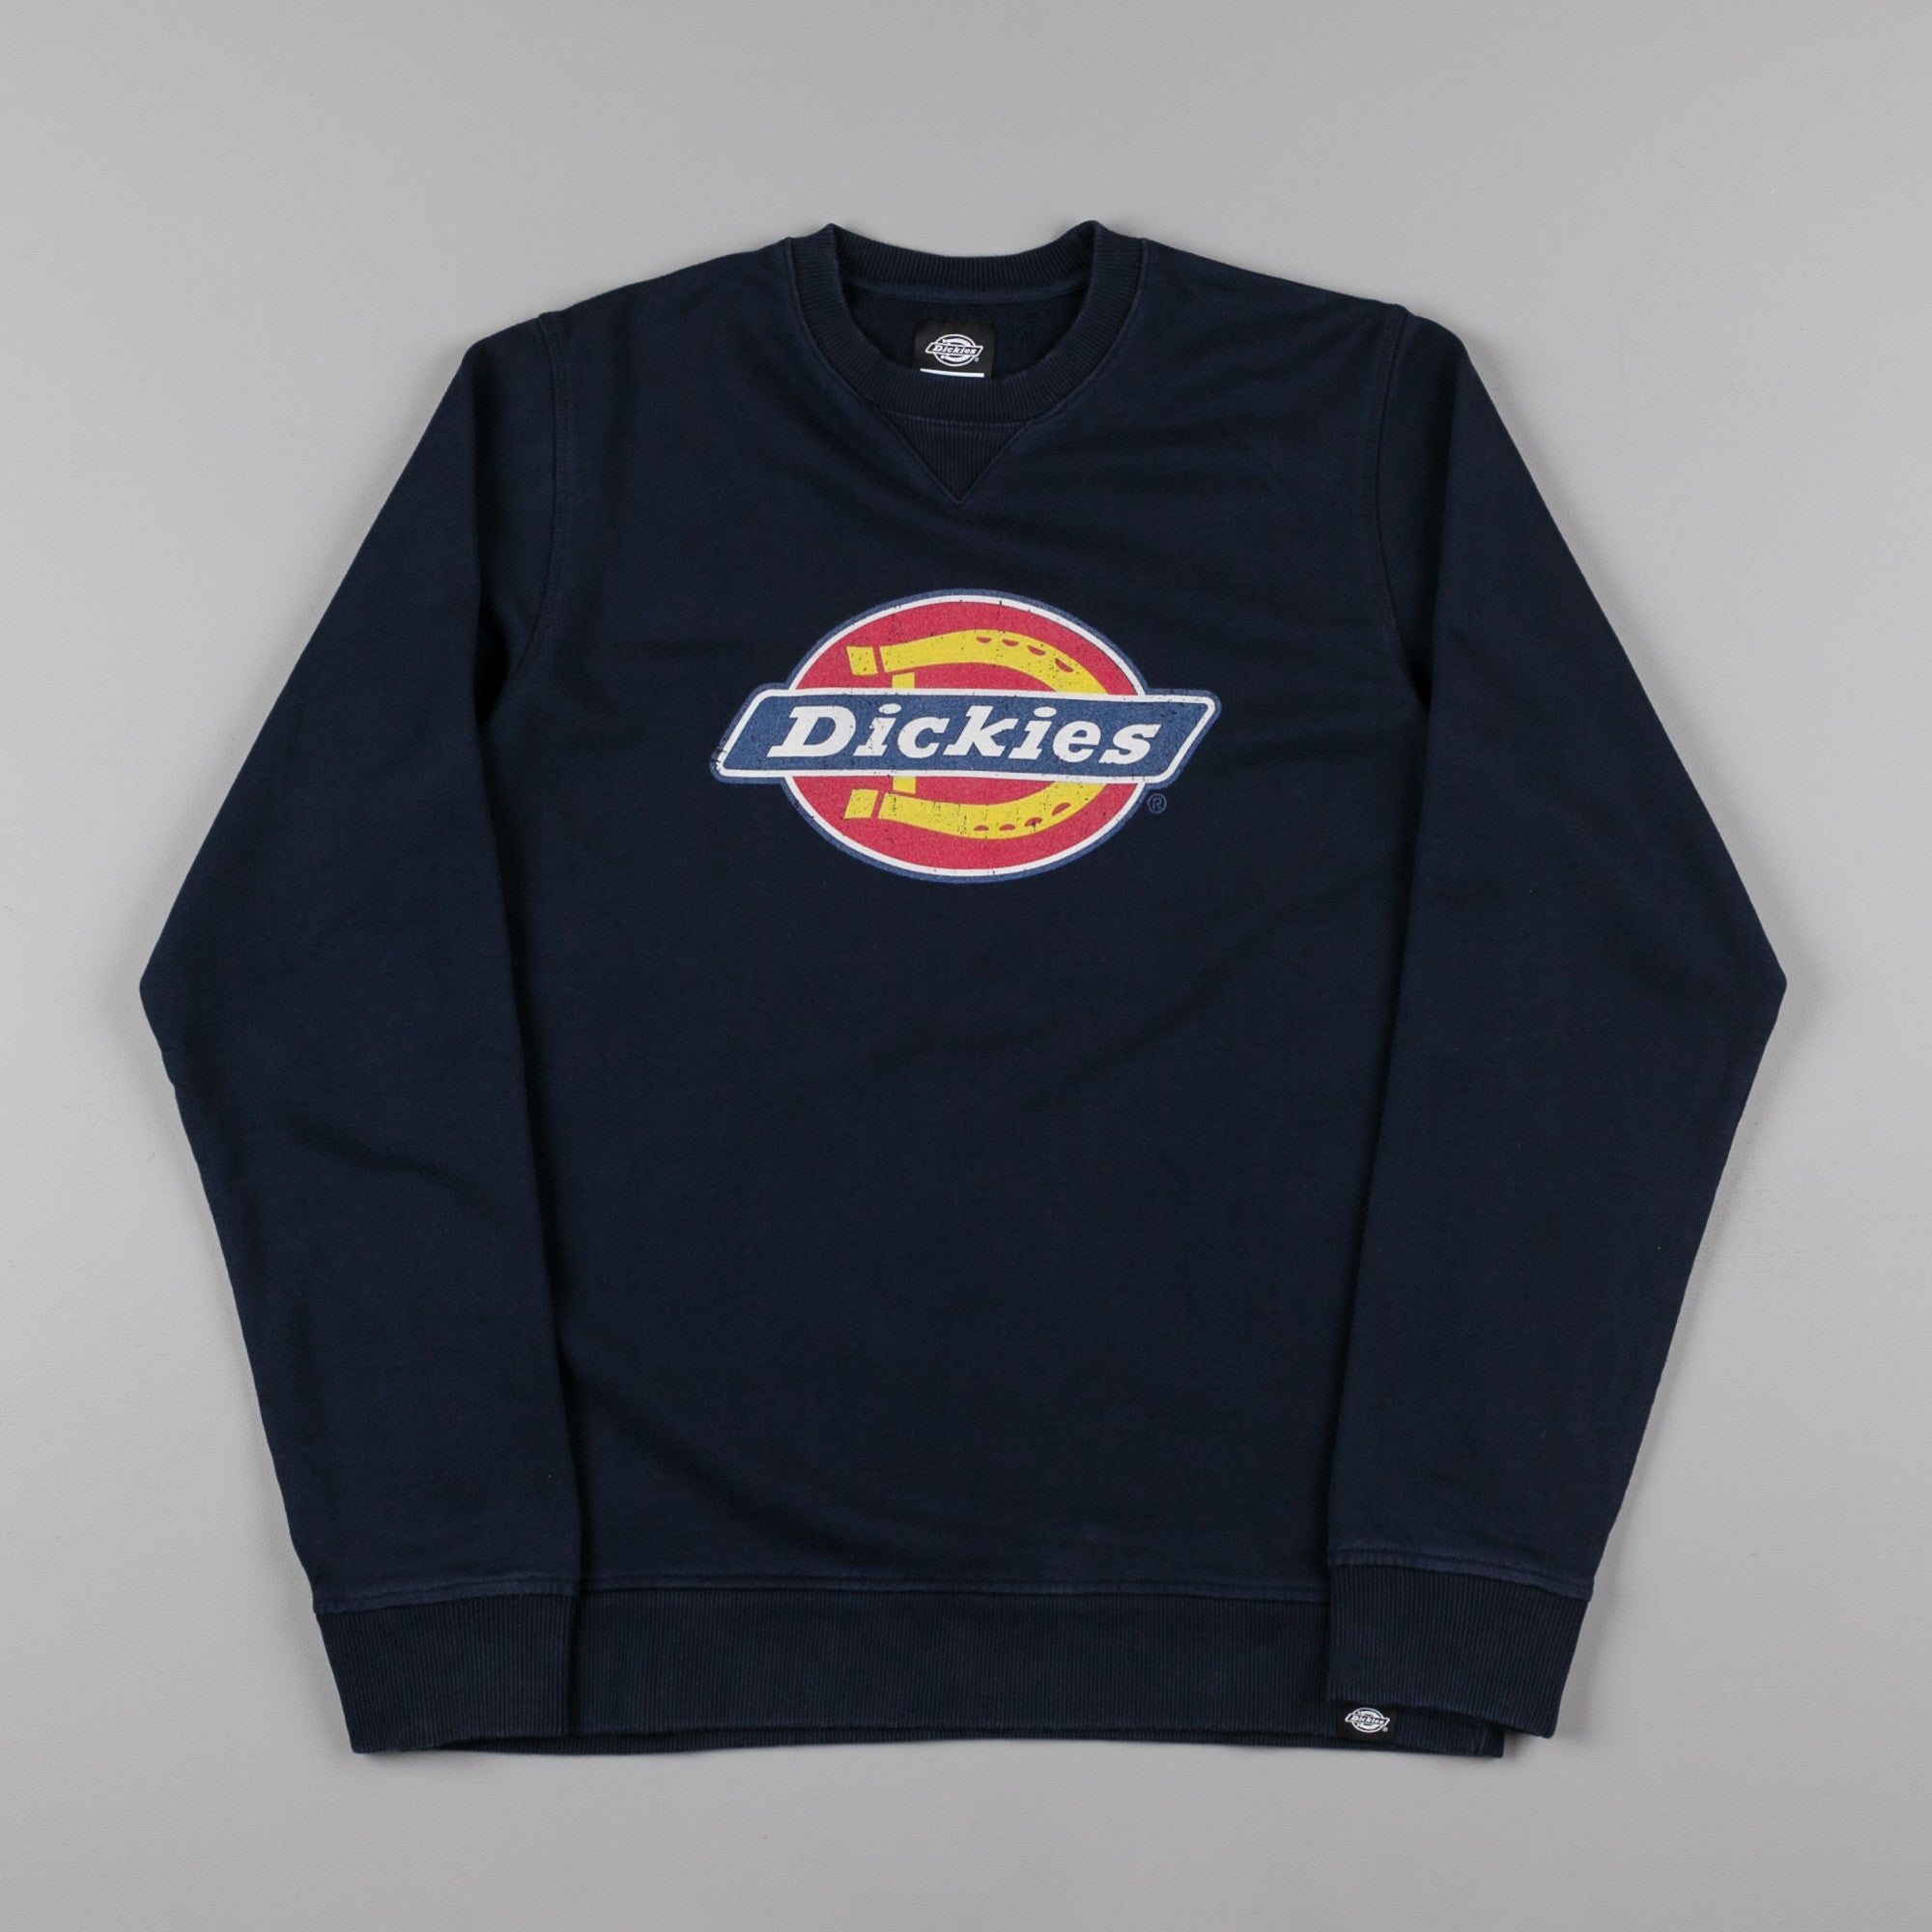 Dickies HS Sweatshirt - Dark Navy